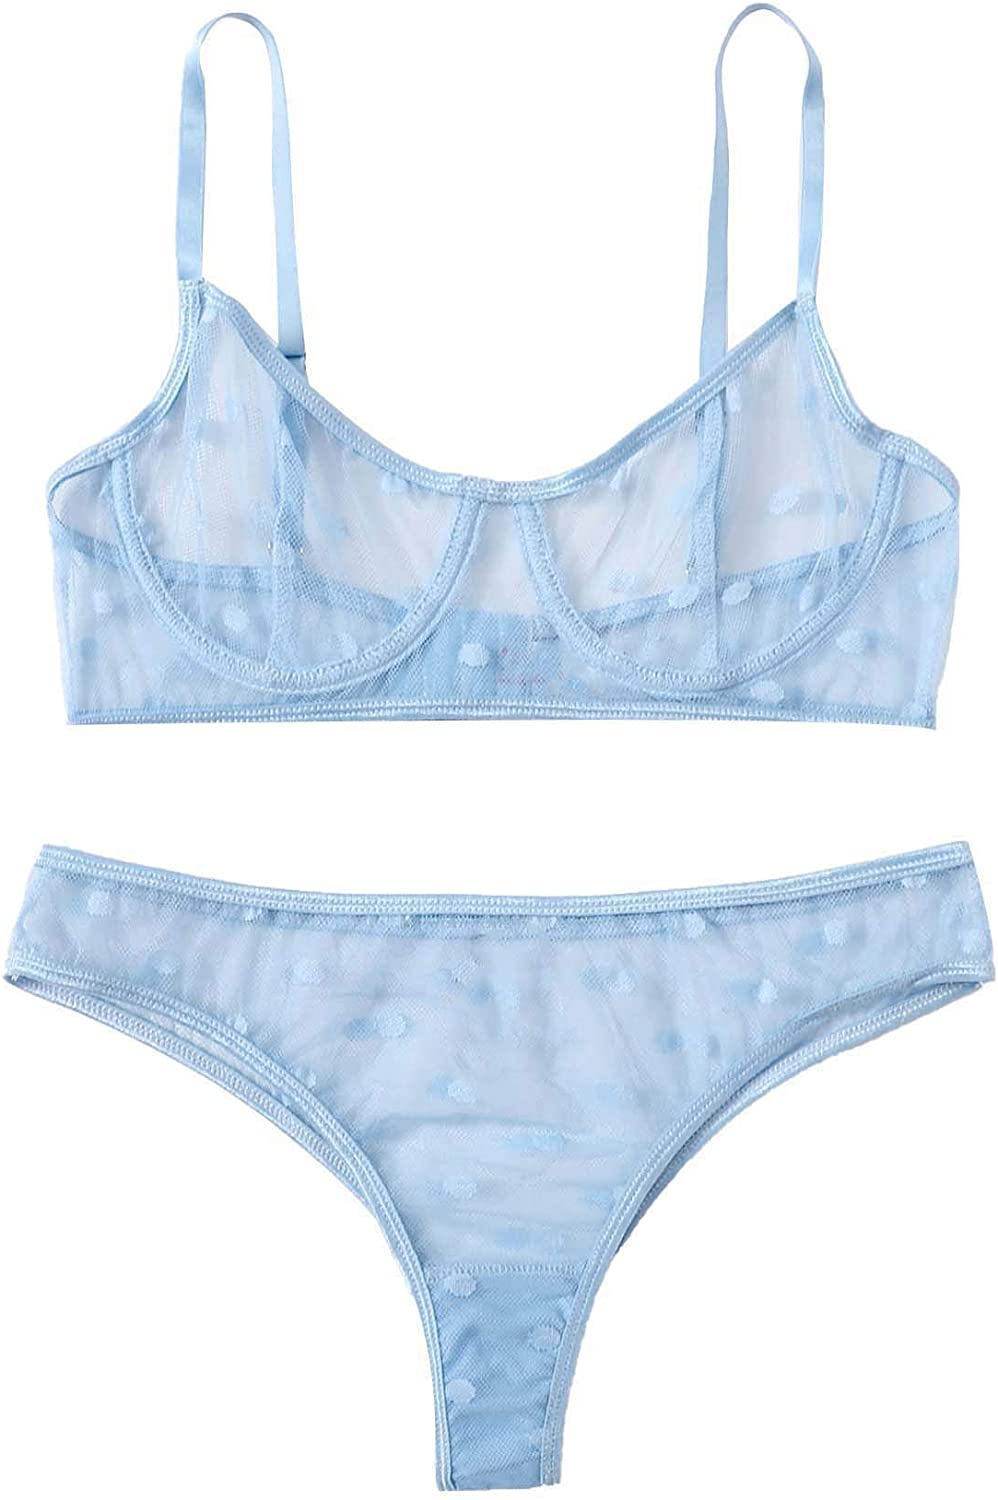 SOLY Raleigh Mall HUX Women's Sheer Mesh Super sale Bralette Set and Lingerie Bra Thongs